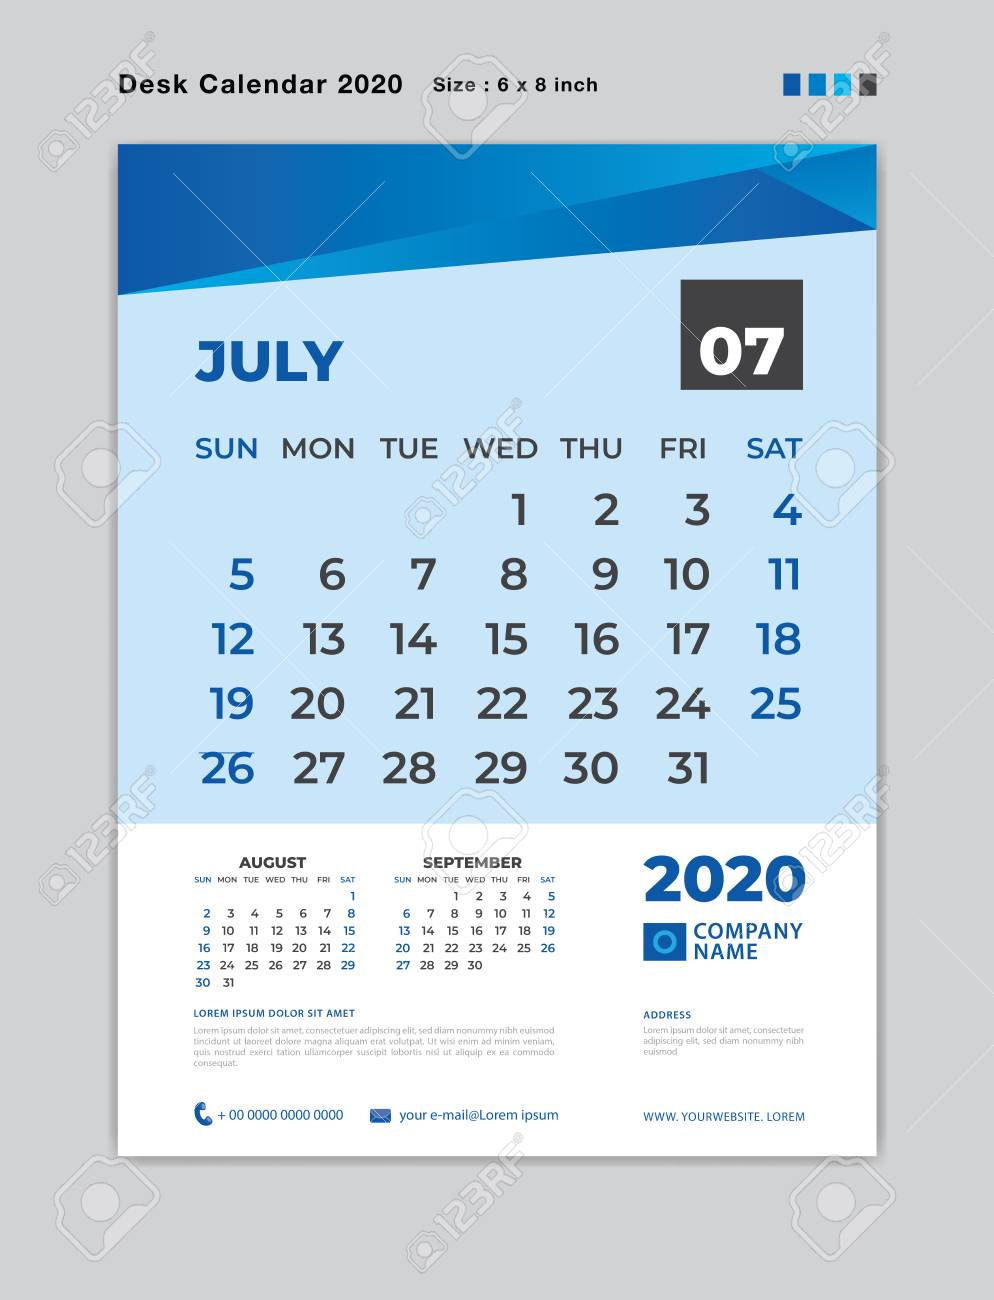 July 2020 Month Template, Desk Calendar For 2020 Year, Week Start.. with regard to July Of 2020